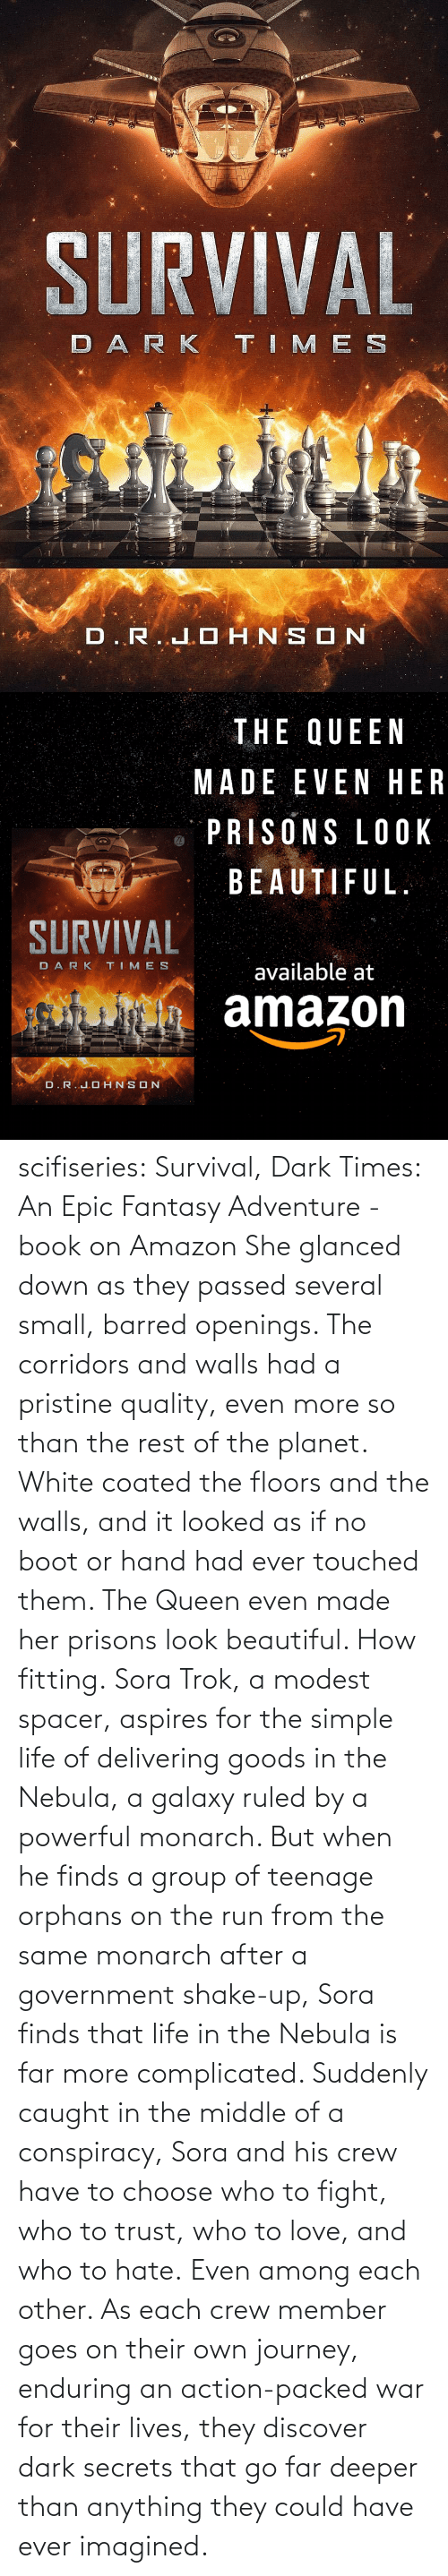 same: scifiseries: Survival, Dark Times: An Epic Fantasy Adventure - book on Amazon  She glanced down as they  passed several small, barred openings. The corridors and walls had a  pristine quality, even more so than the rest of the planet. White coated  the floors and the walls, and it looked as if no boot or hand had ever  touched them.  The Queen even made her prisons look beautiful.  How fitting. Sora  Trok, a modest spacer, aspires for the simple life of delivering goods  in the Nebula, a galaxy ruled by a powerful monarch. But when he finds a  group of teenage orphans on the run from the same monarch after a  government shake-up, Sora finds that life in the Nebula is far more complicated.  Suddenly  caught in the middle of a conspiracy, Sora and his crew have to choose  who to fight, who to trust, who to love, and who to hate. Even among each other.  As  each crew member goes on their own journey, enduring an action-packed  war for their lives, they discover dark secrets that go far deeper than  anything they could have ever imagined.